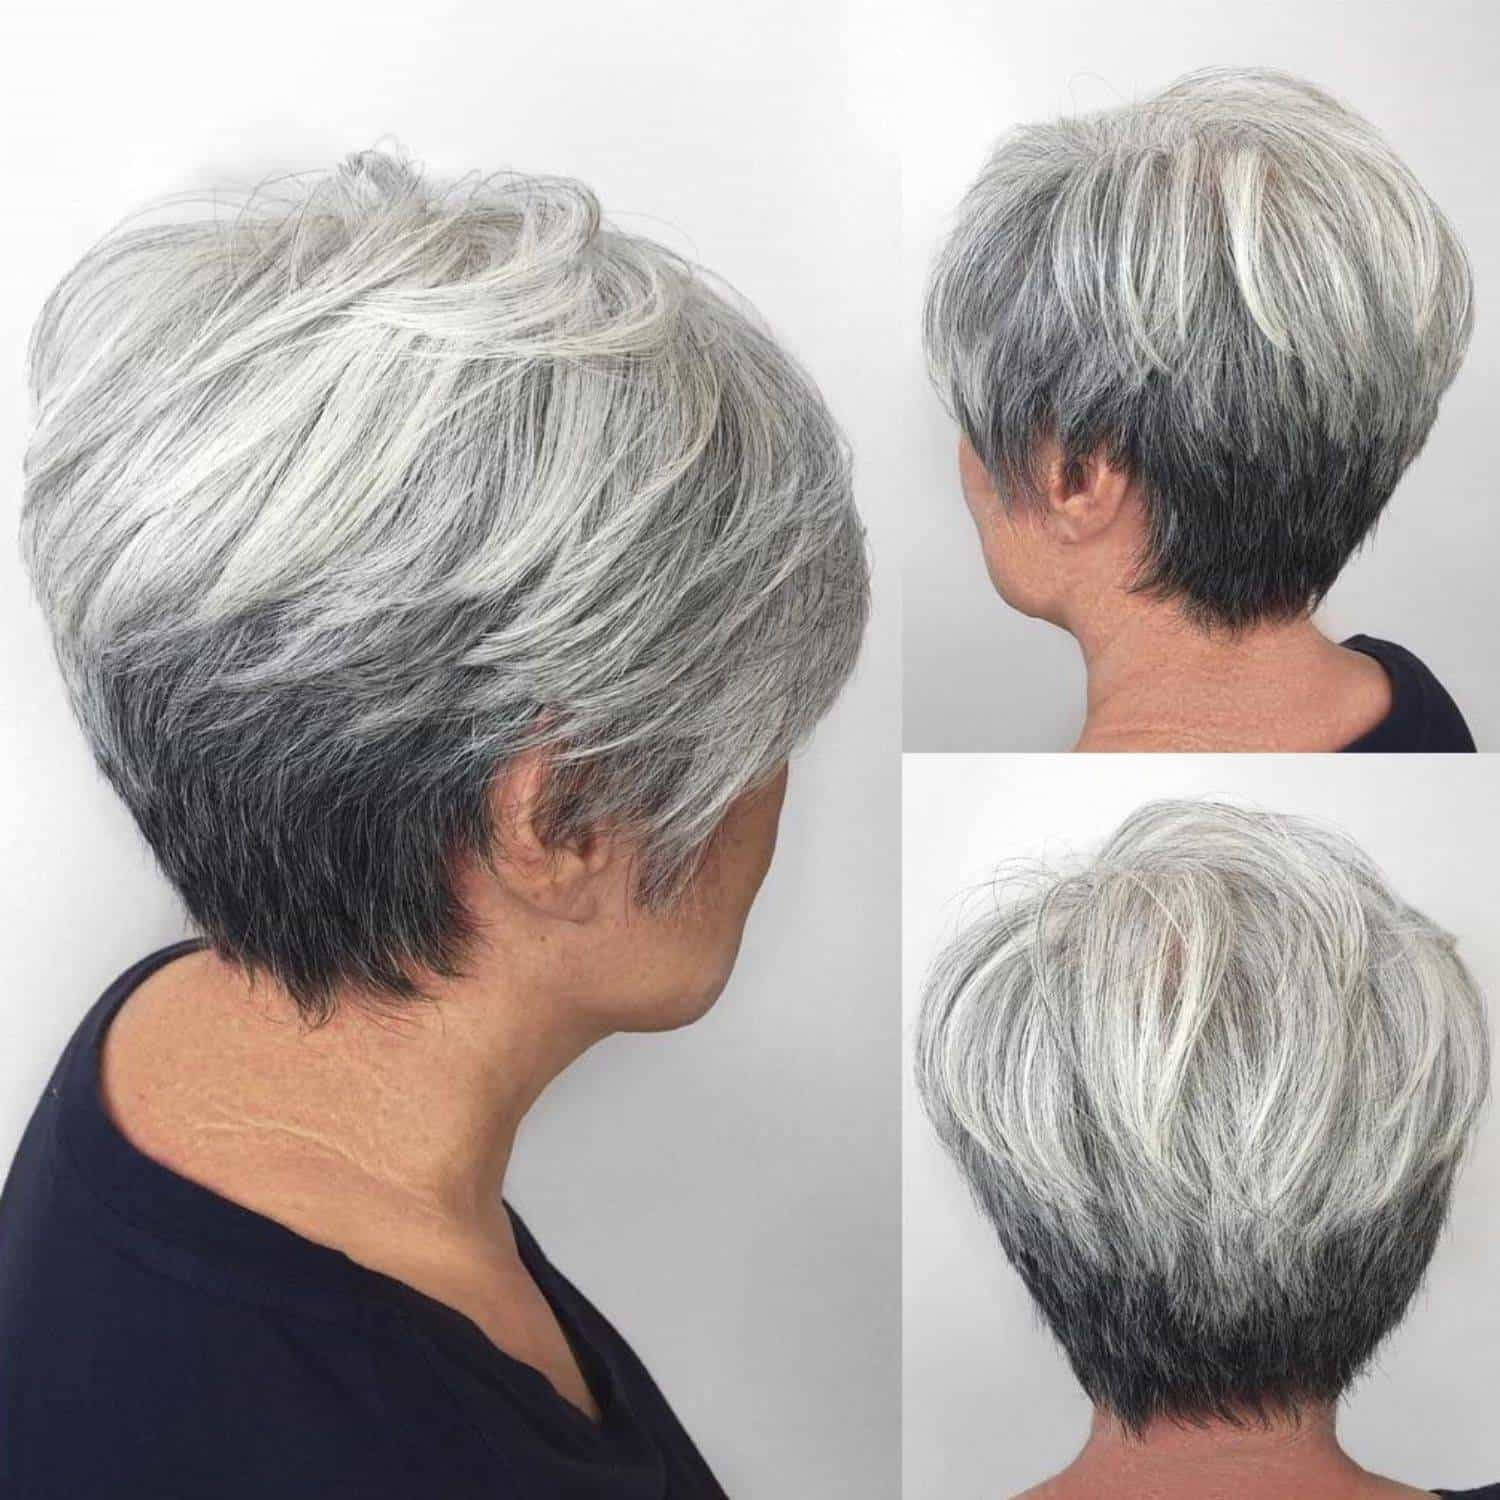 20 Best Short Hairdos For Women Over 60 That Will Take 20 Years Off Your Face_29